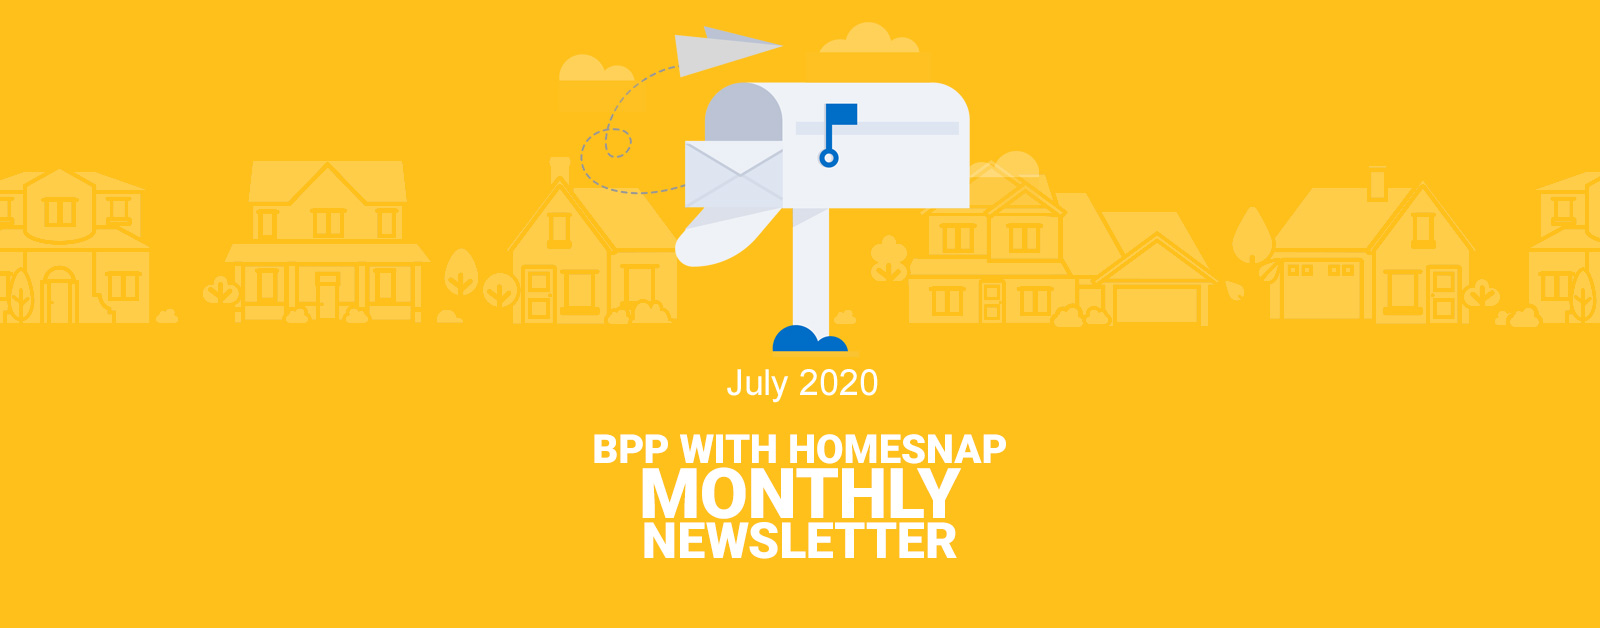 BPP Newsletter July 2020